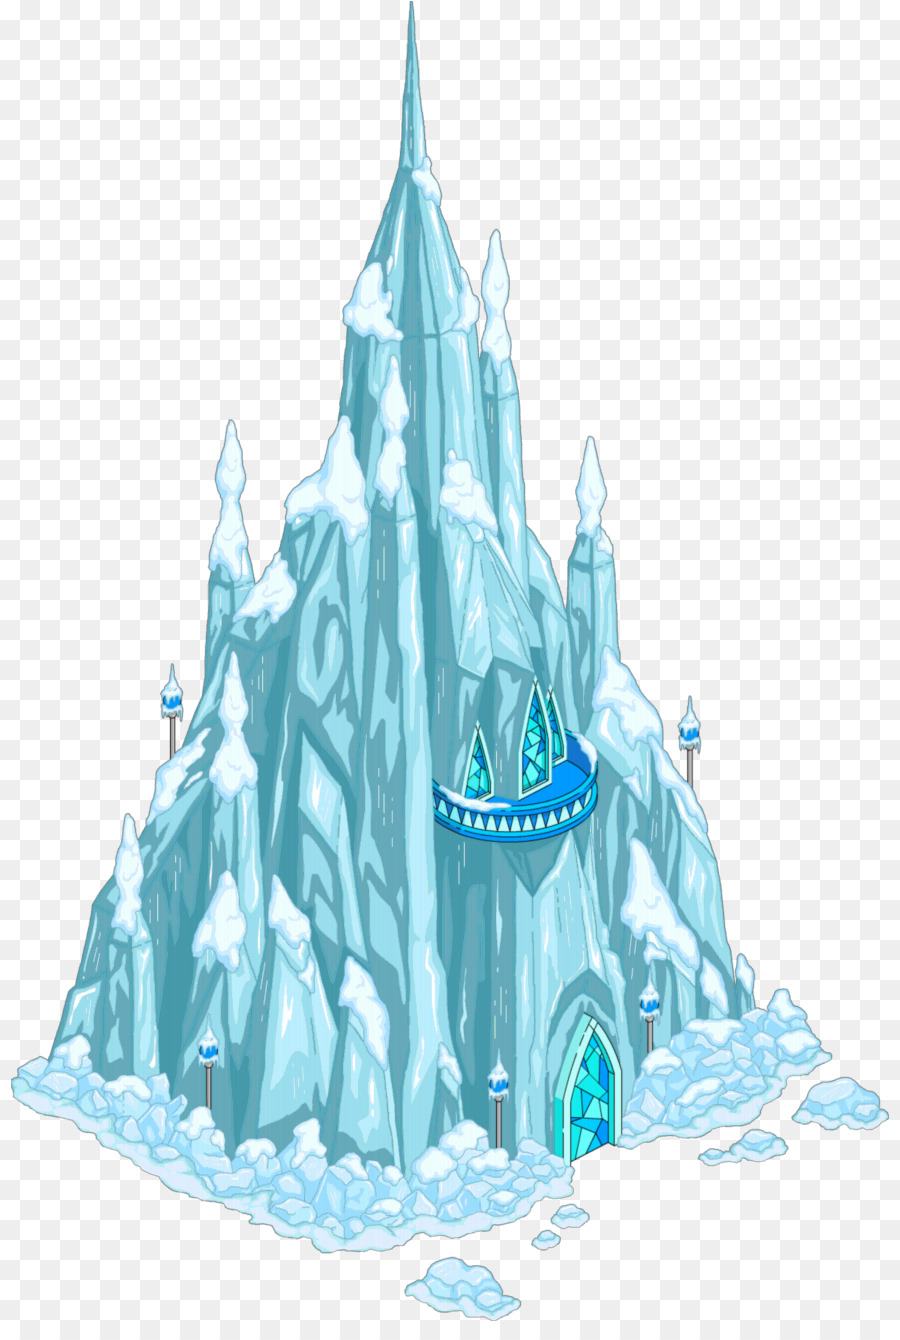 Frozen castle clipart picture freeuse stock Elsa Frozen clipart - Water, transparent clip art picture freeuse stock